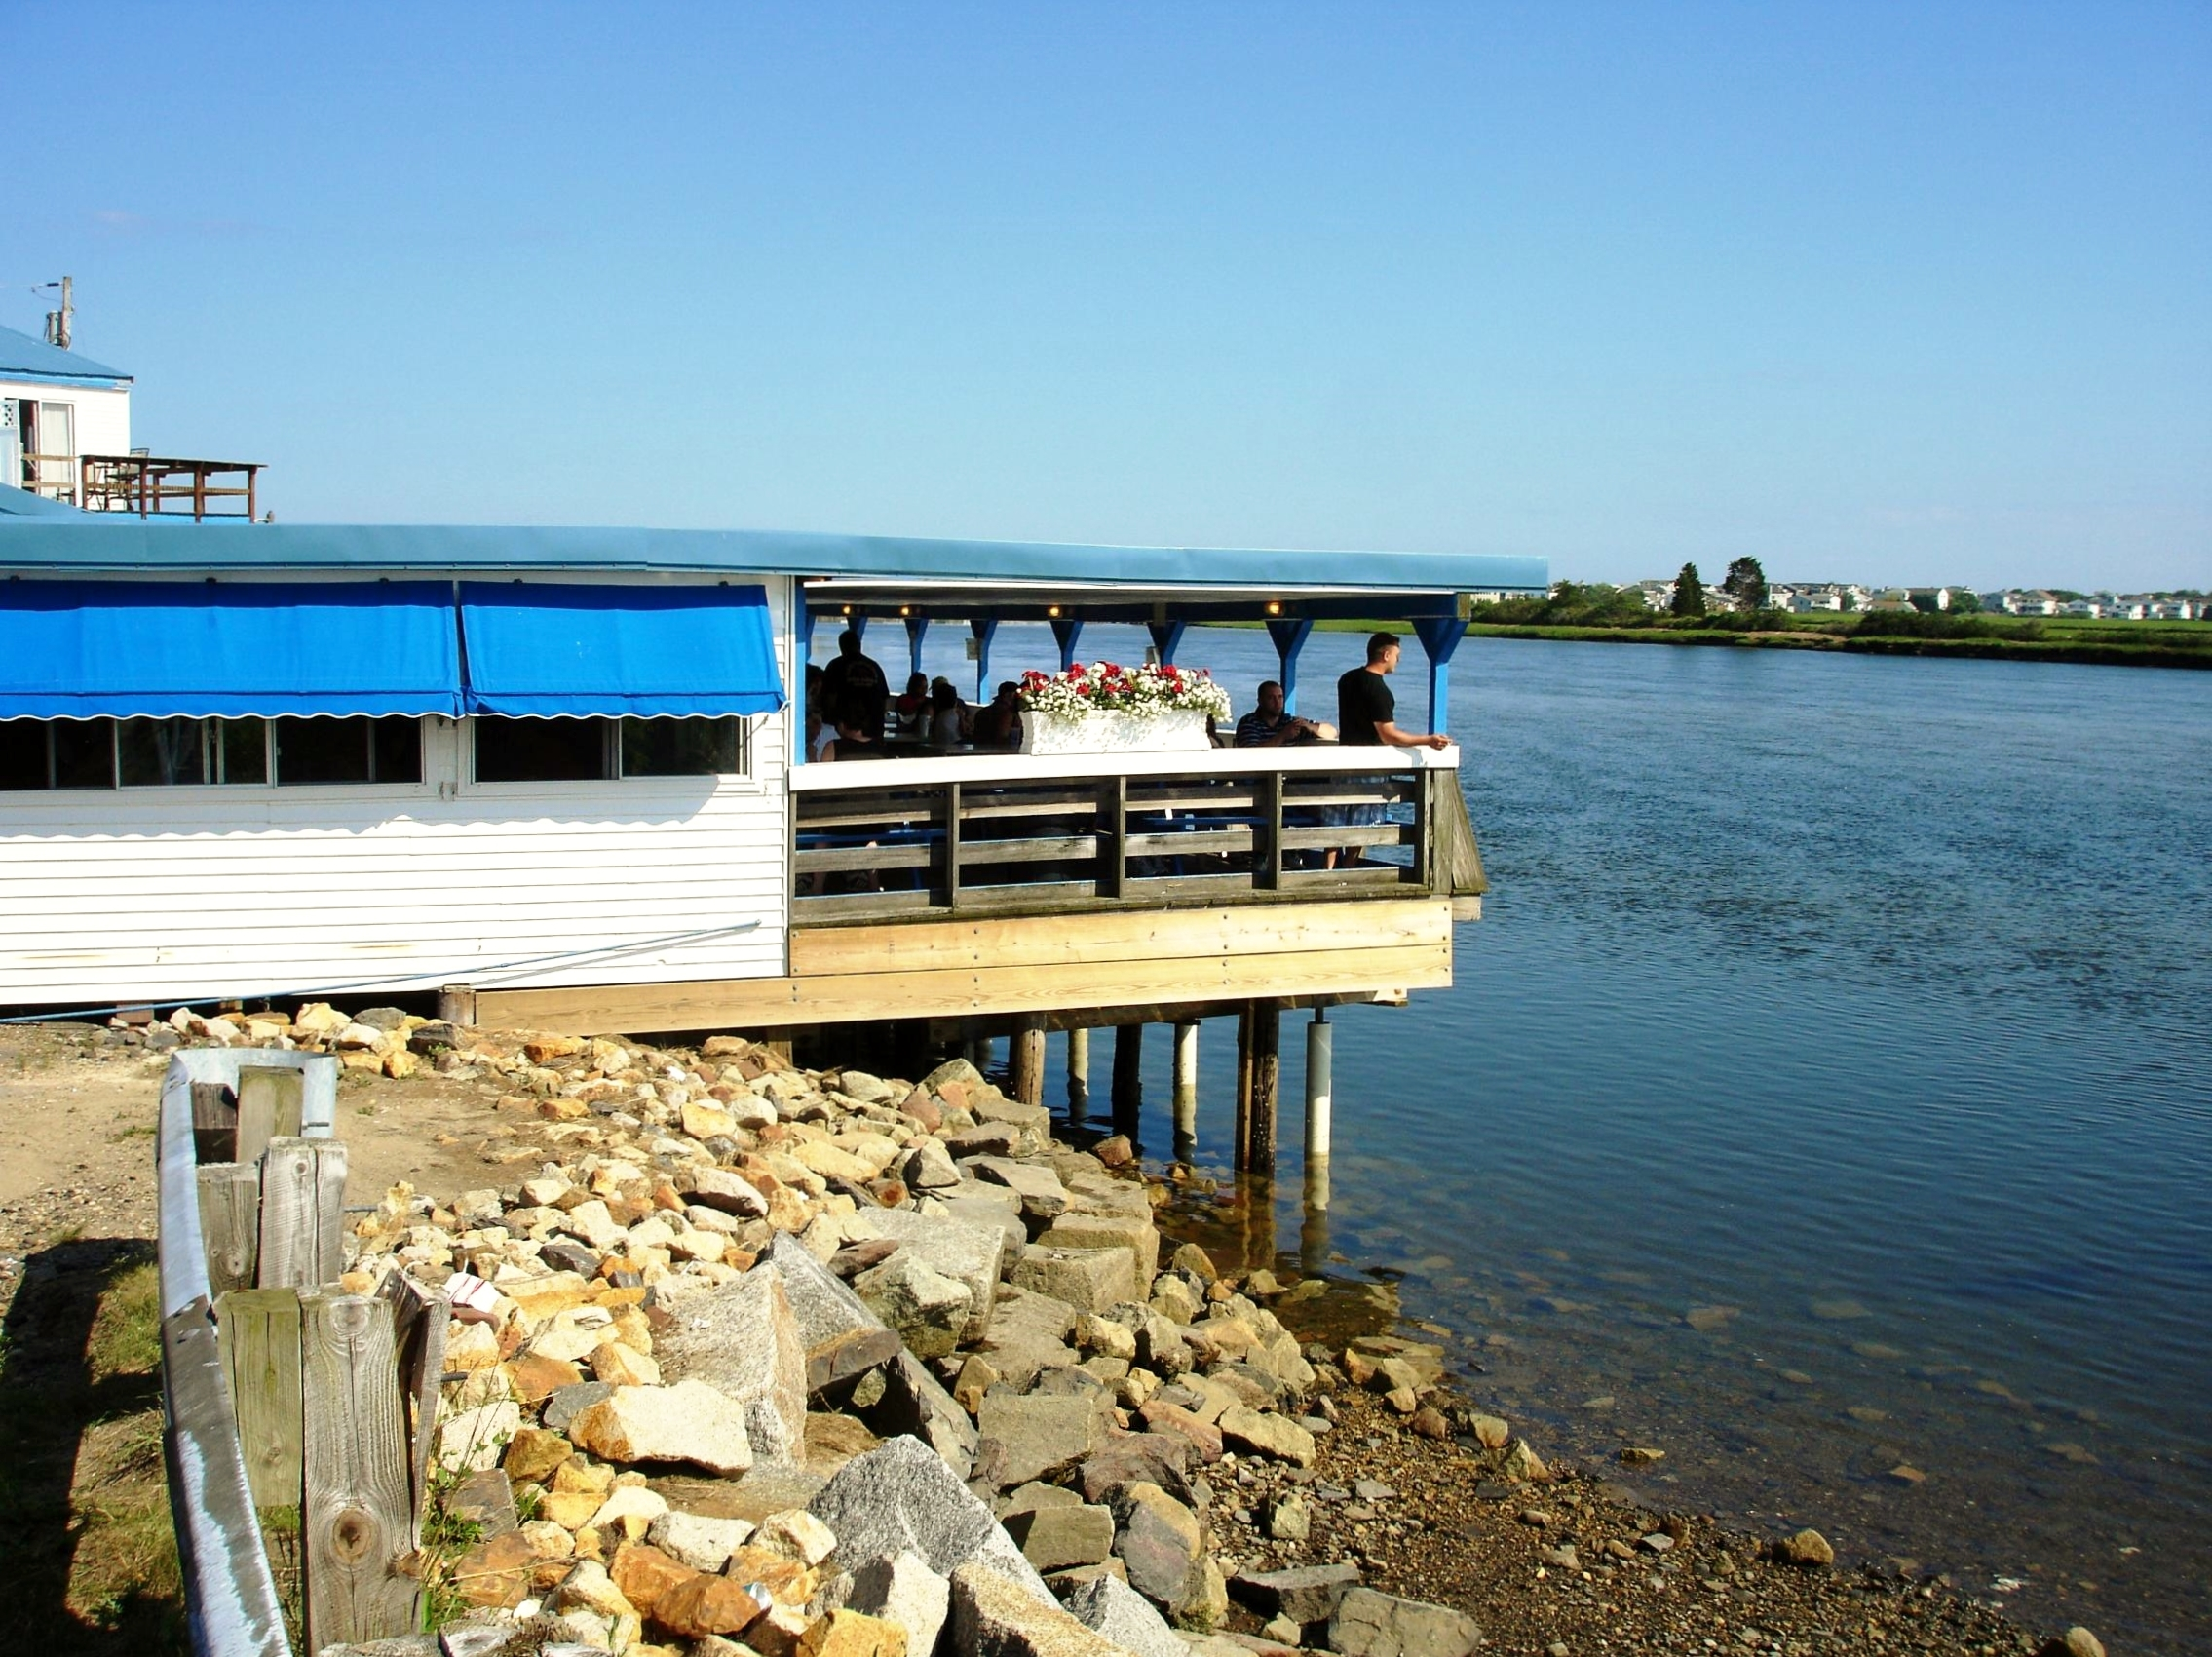 Markey's Lobster Pool is right on New Hampshire's border with Massachusetts, about a half-mile from the Atlantic Ocean.